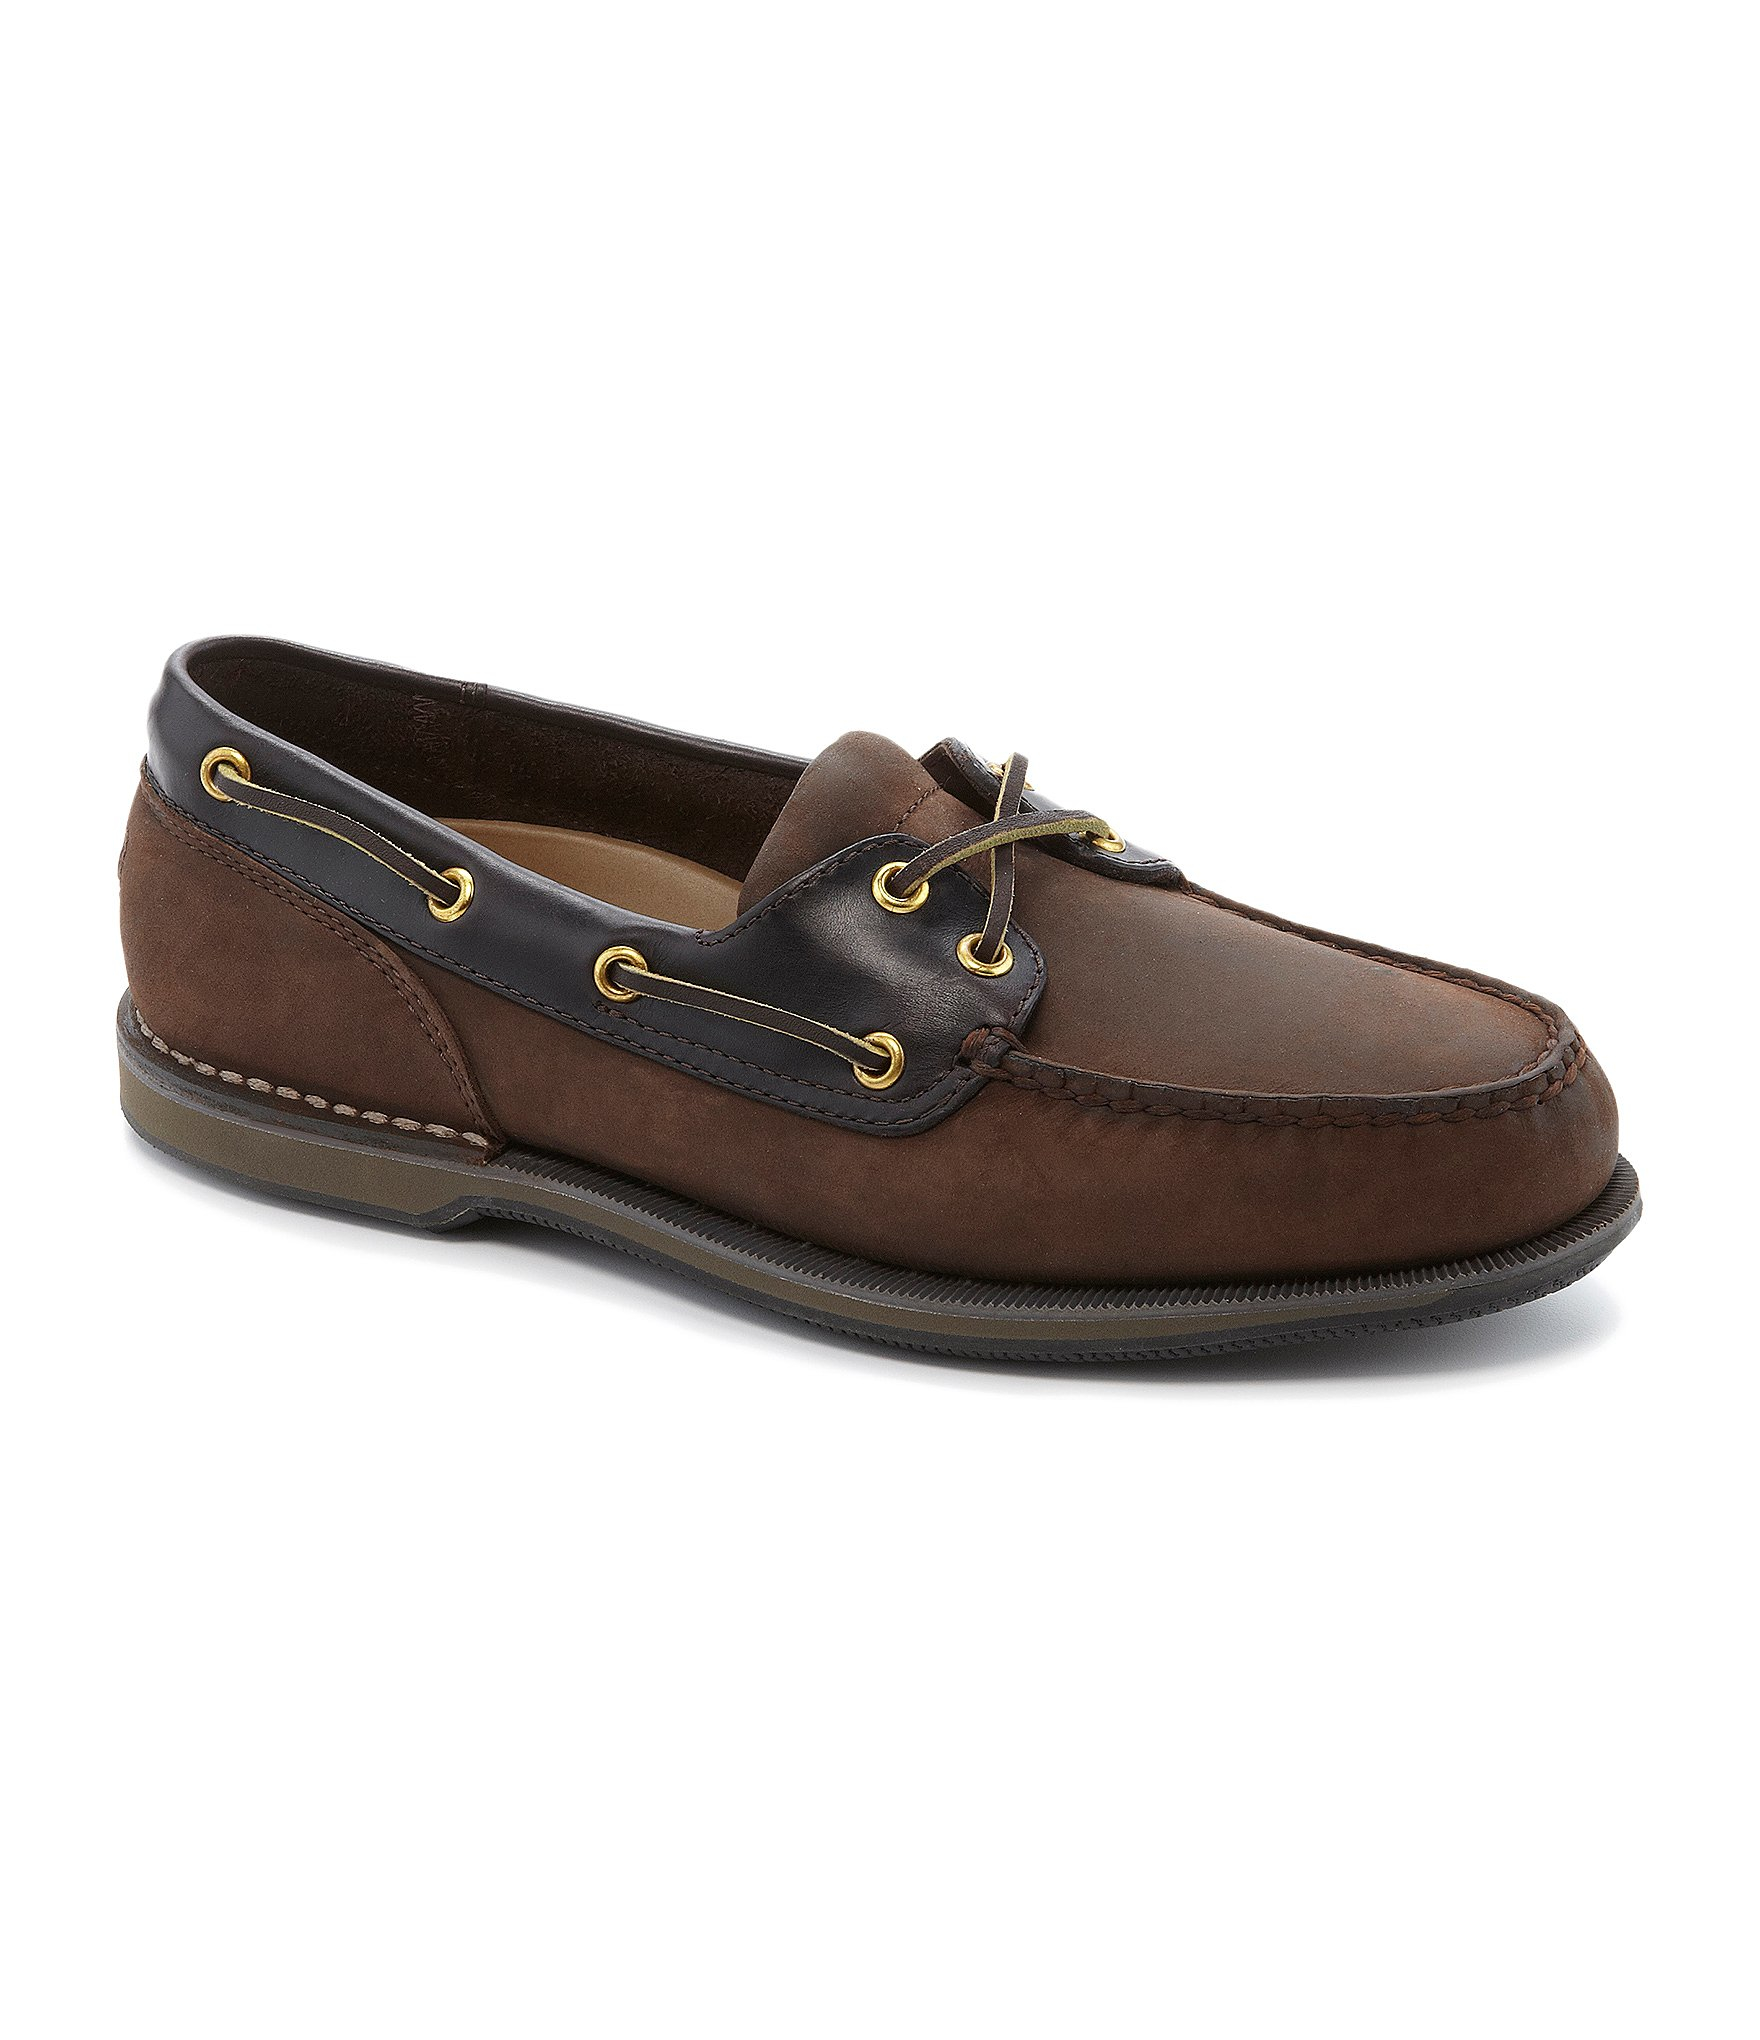 Perth Clarks Shoes